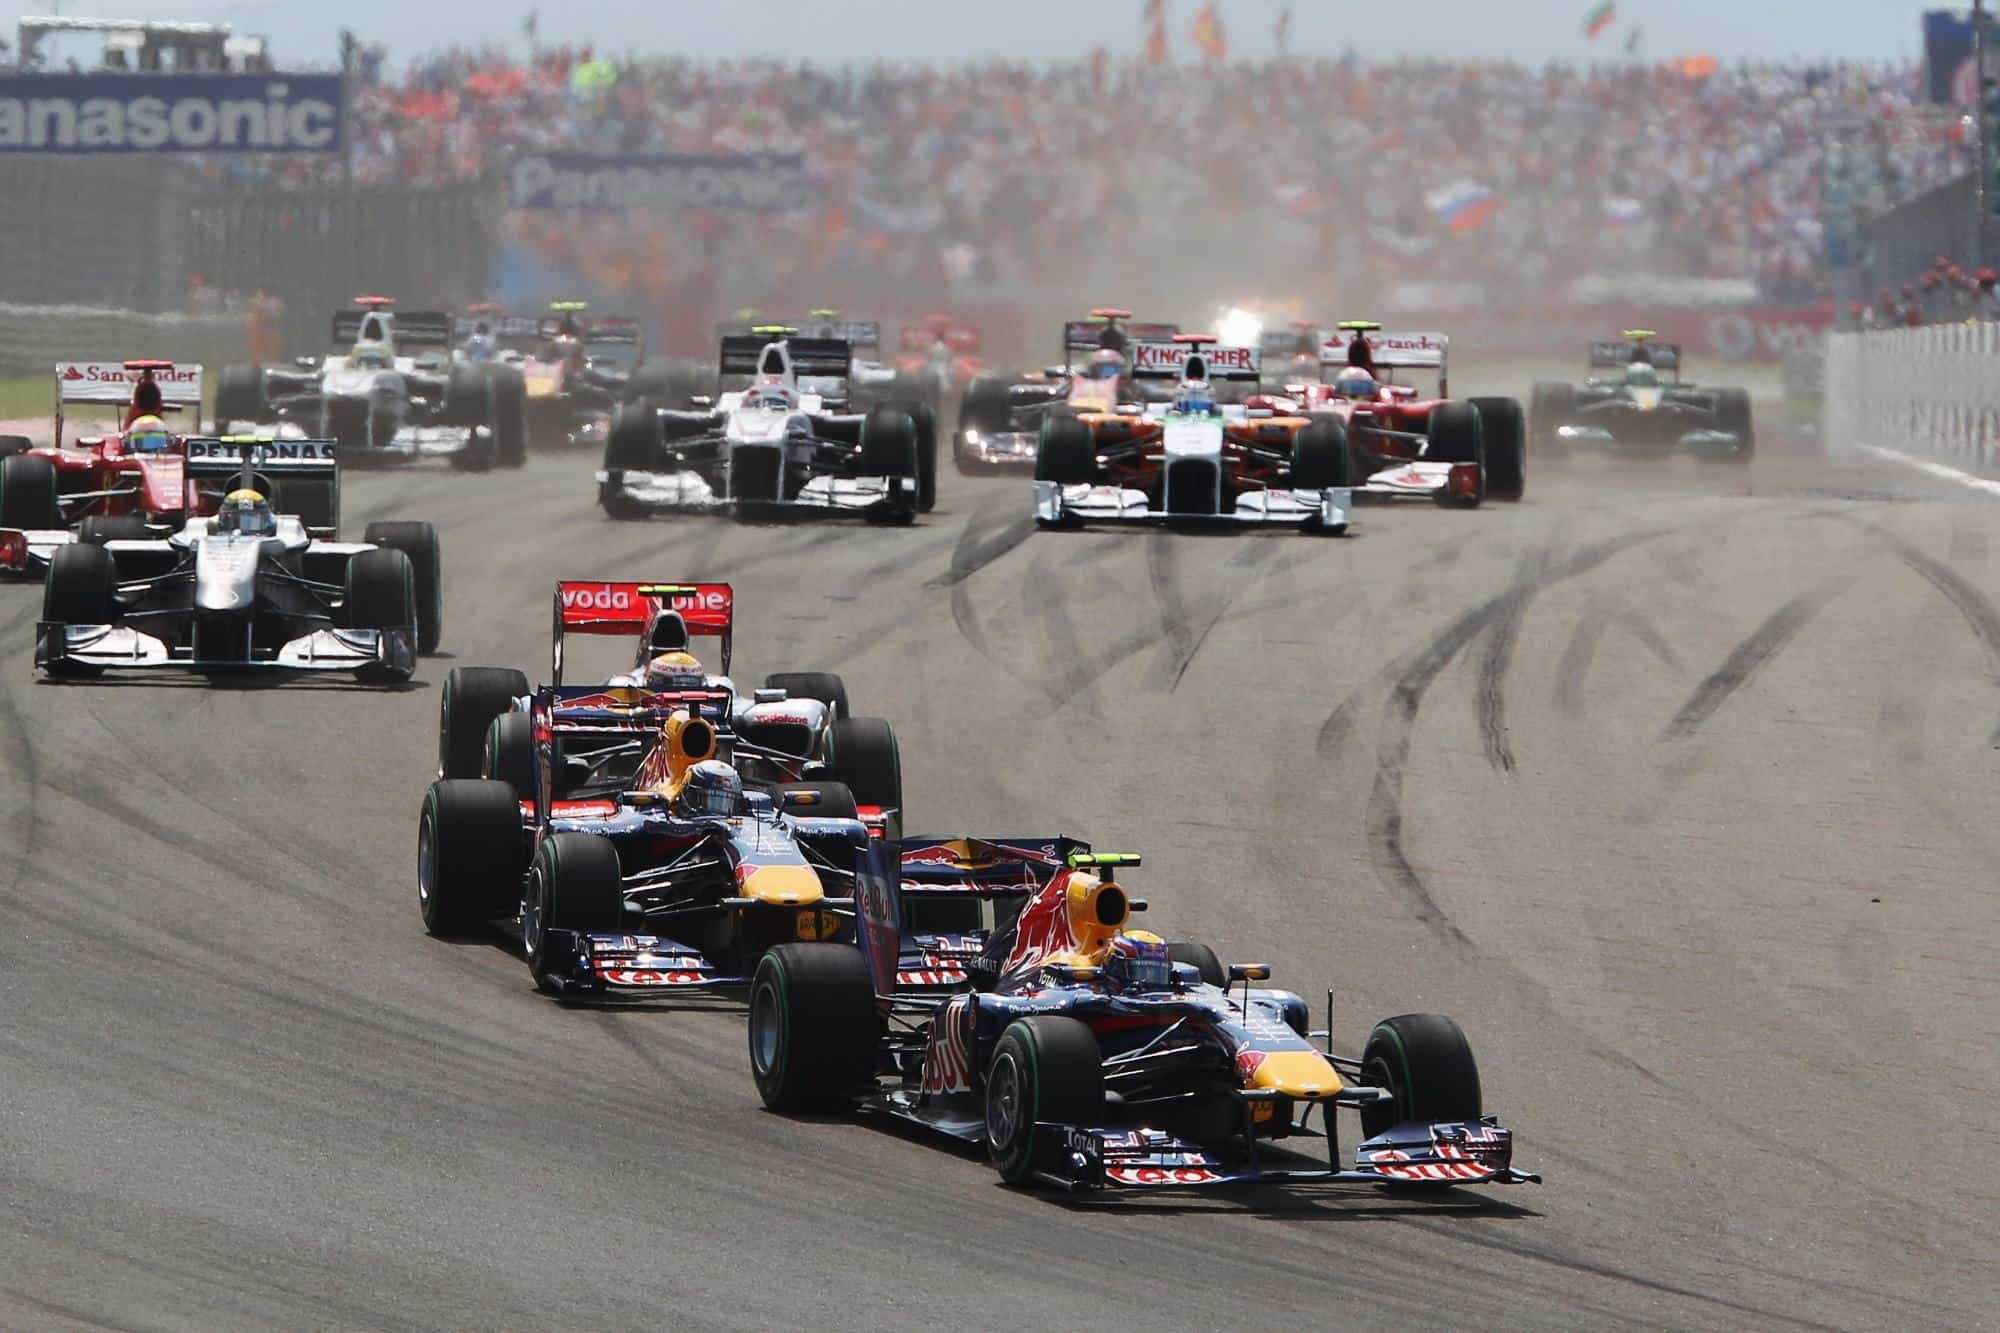 Turkish GP F1 2010 start Photo Red Bull